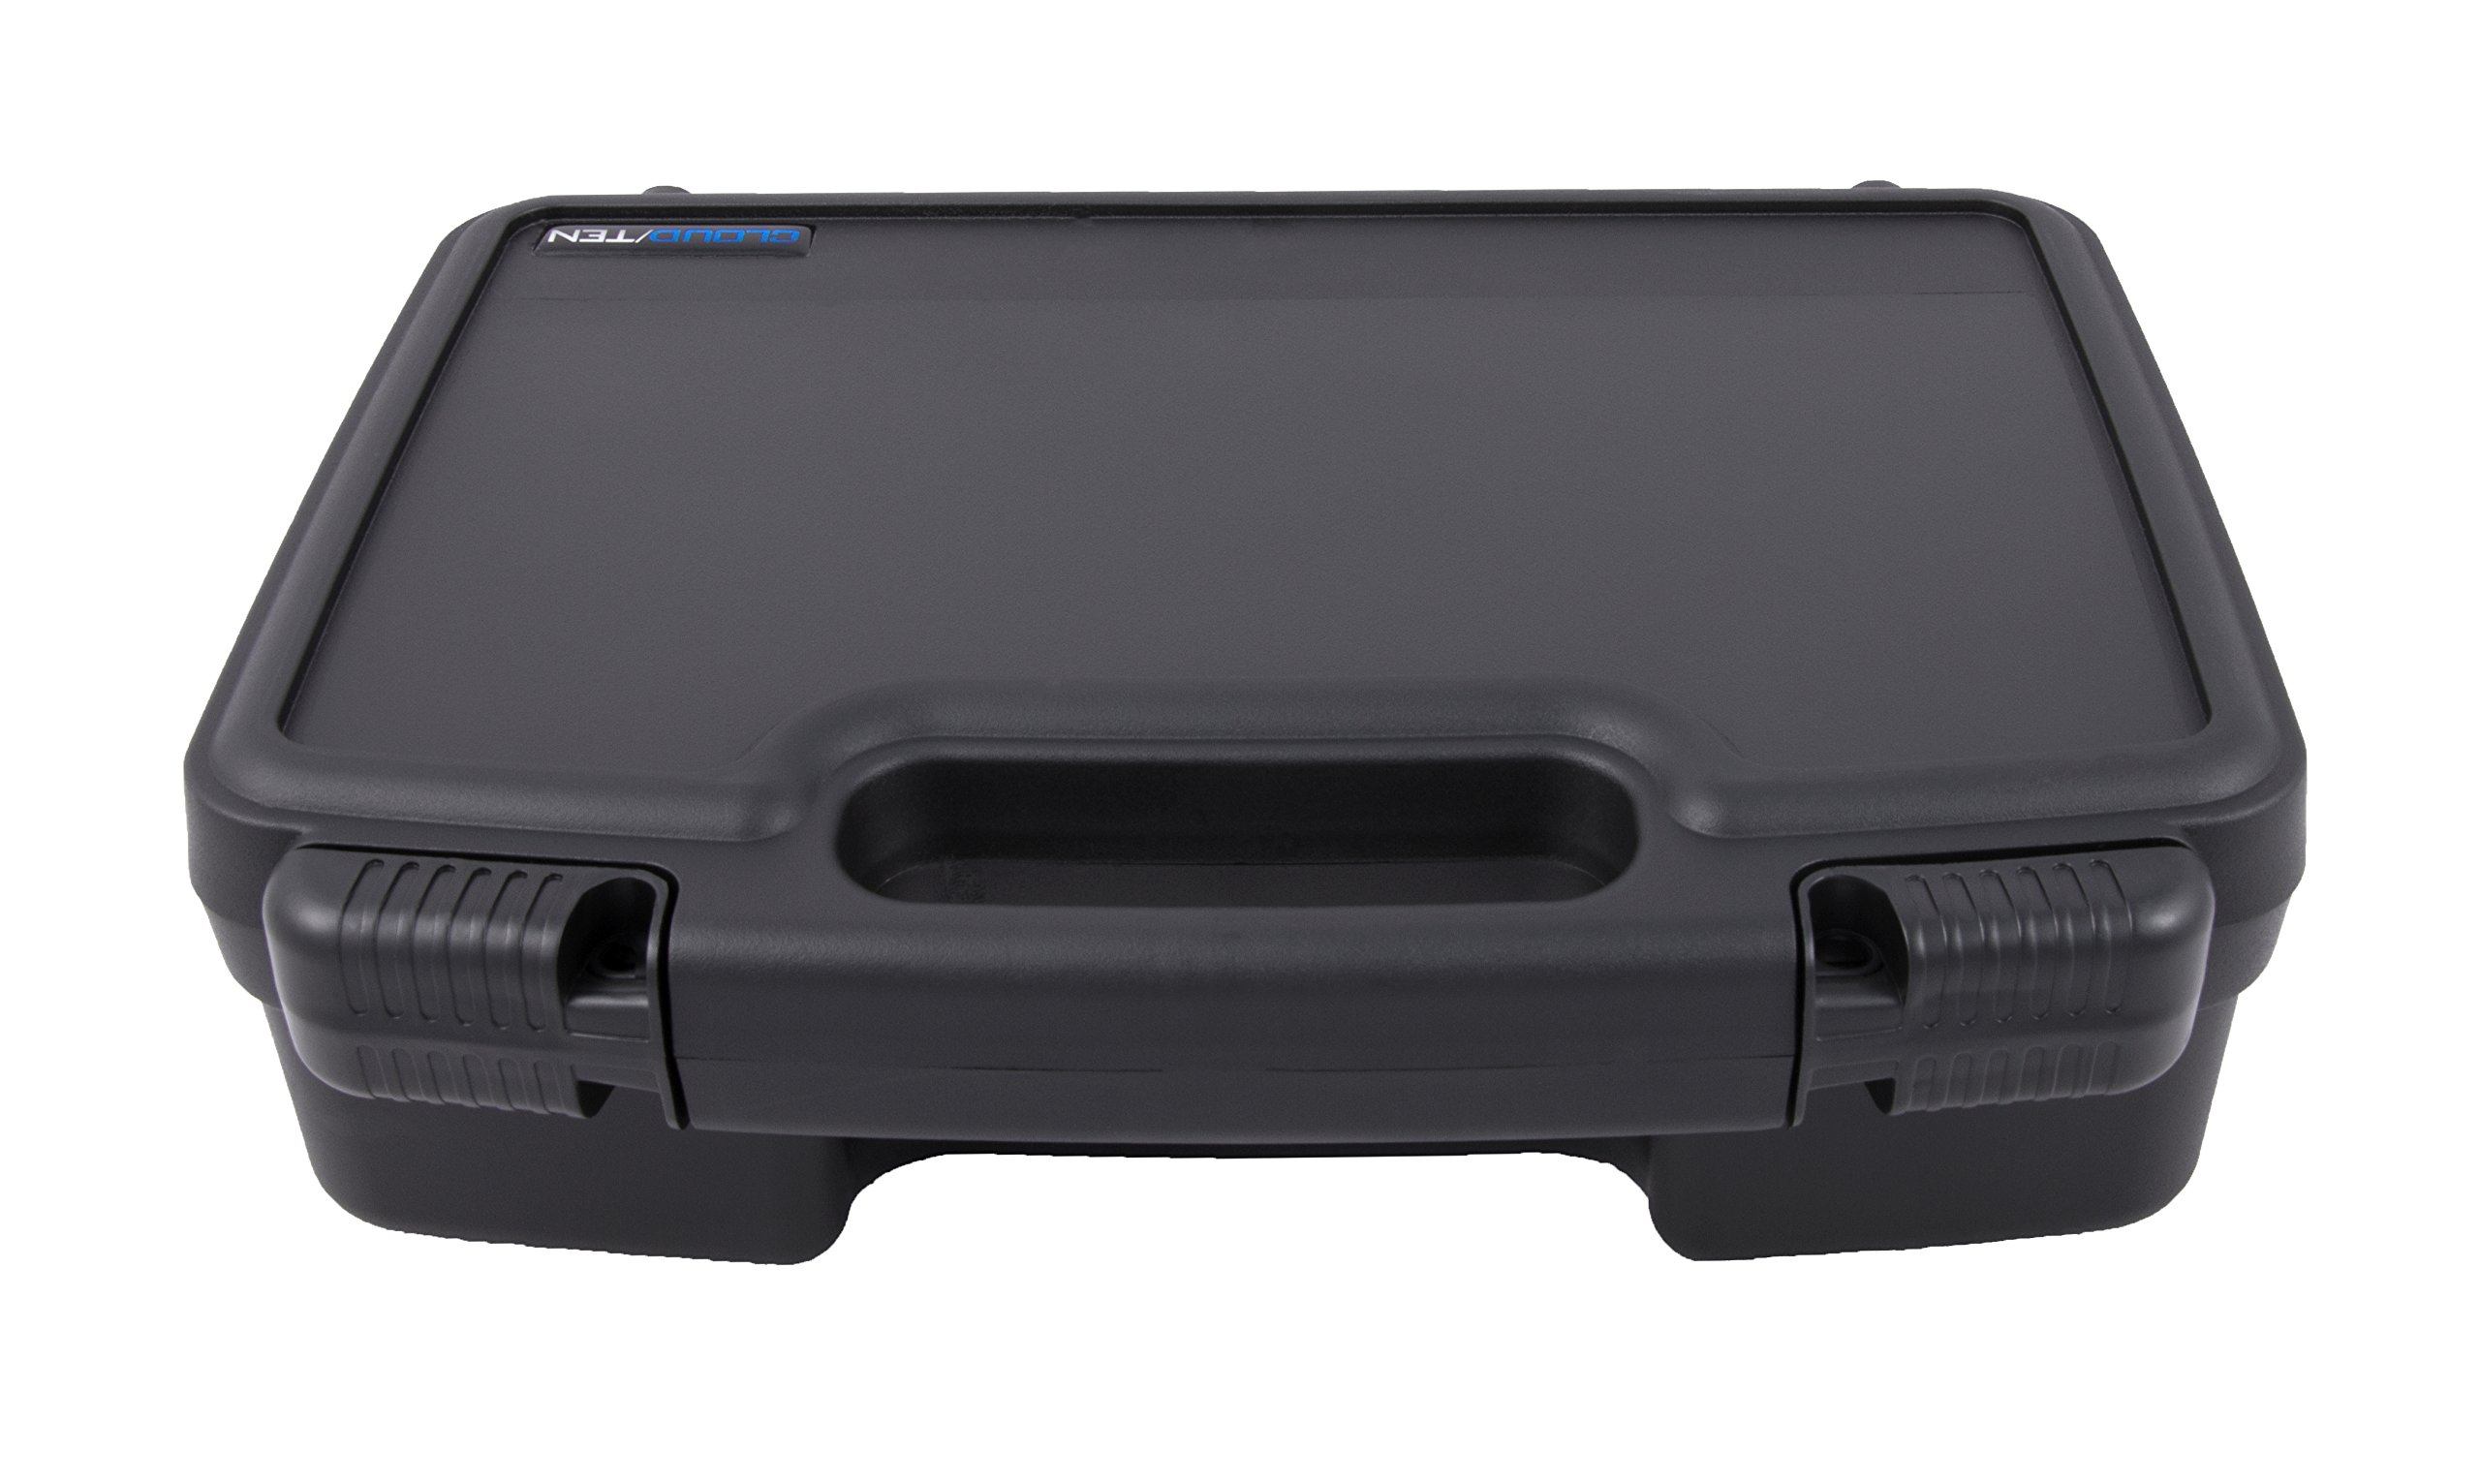 Casematix Portable Recorder Carrying Travel Hard Case with